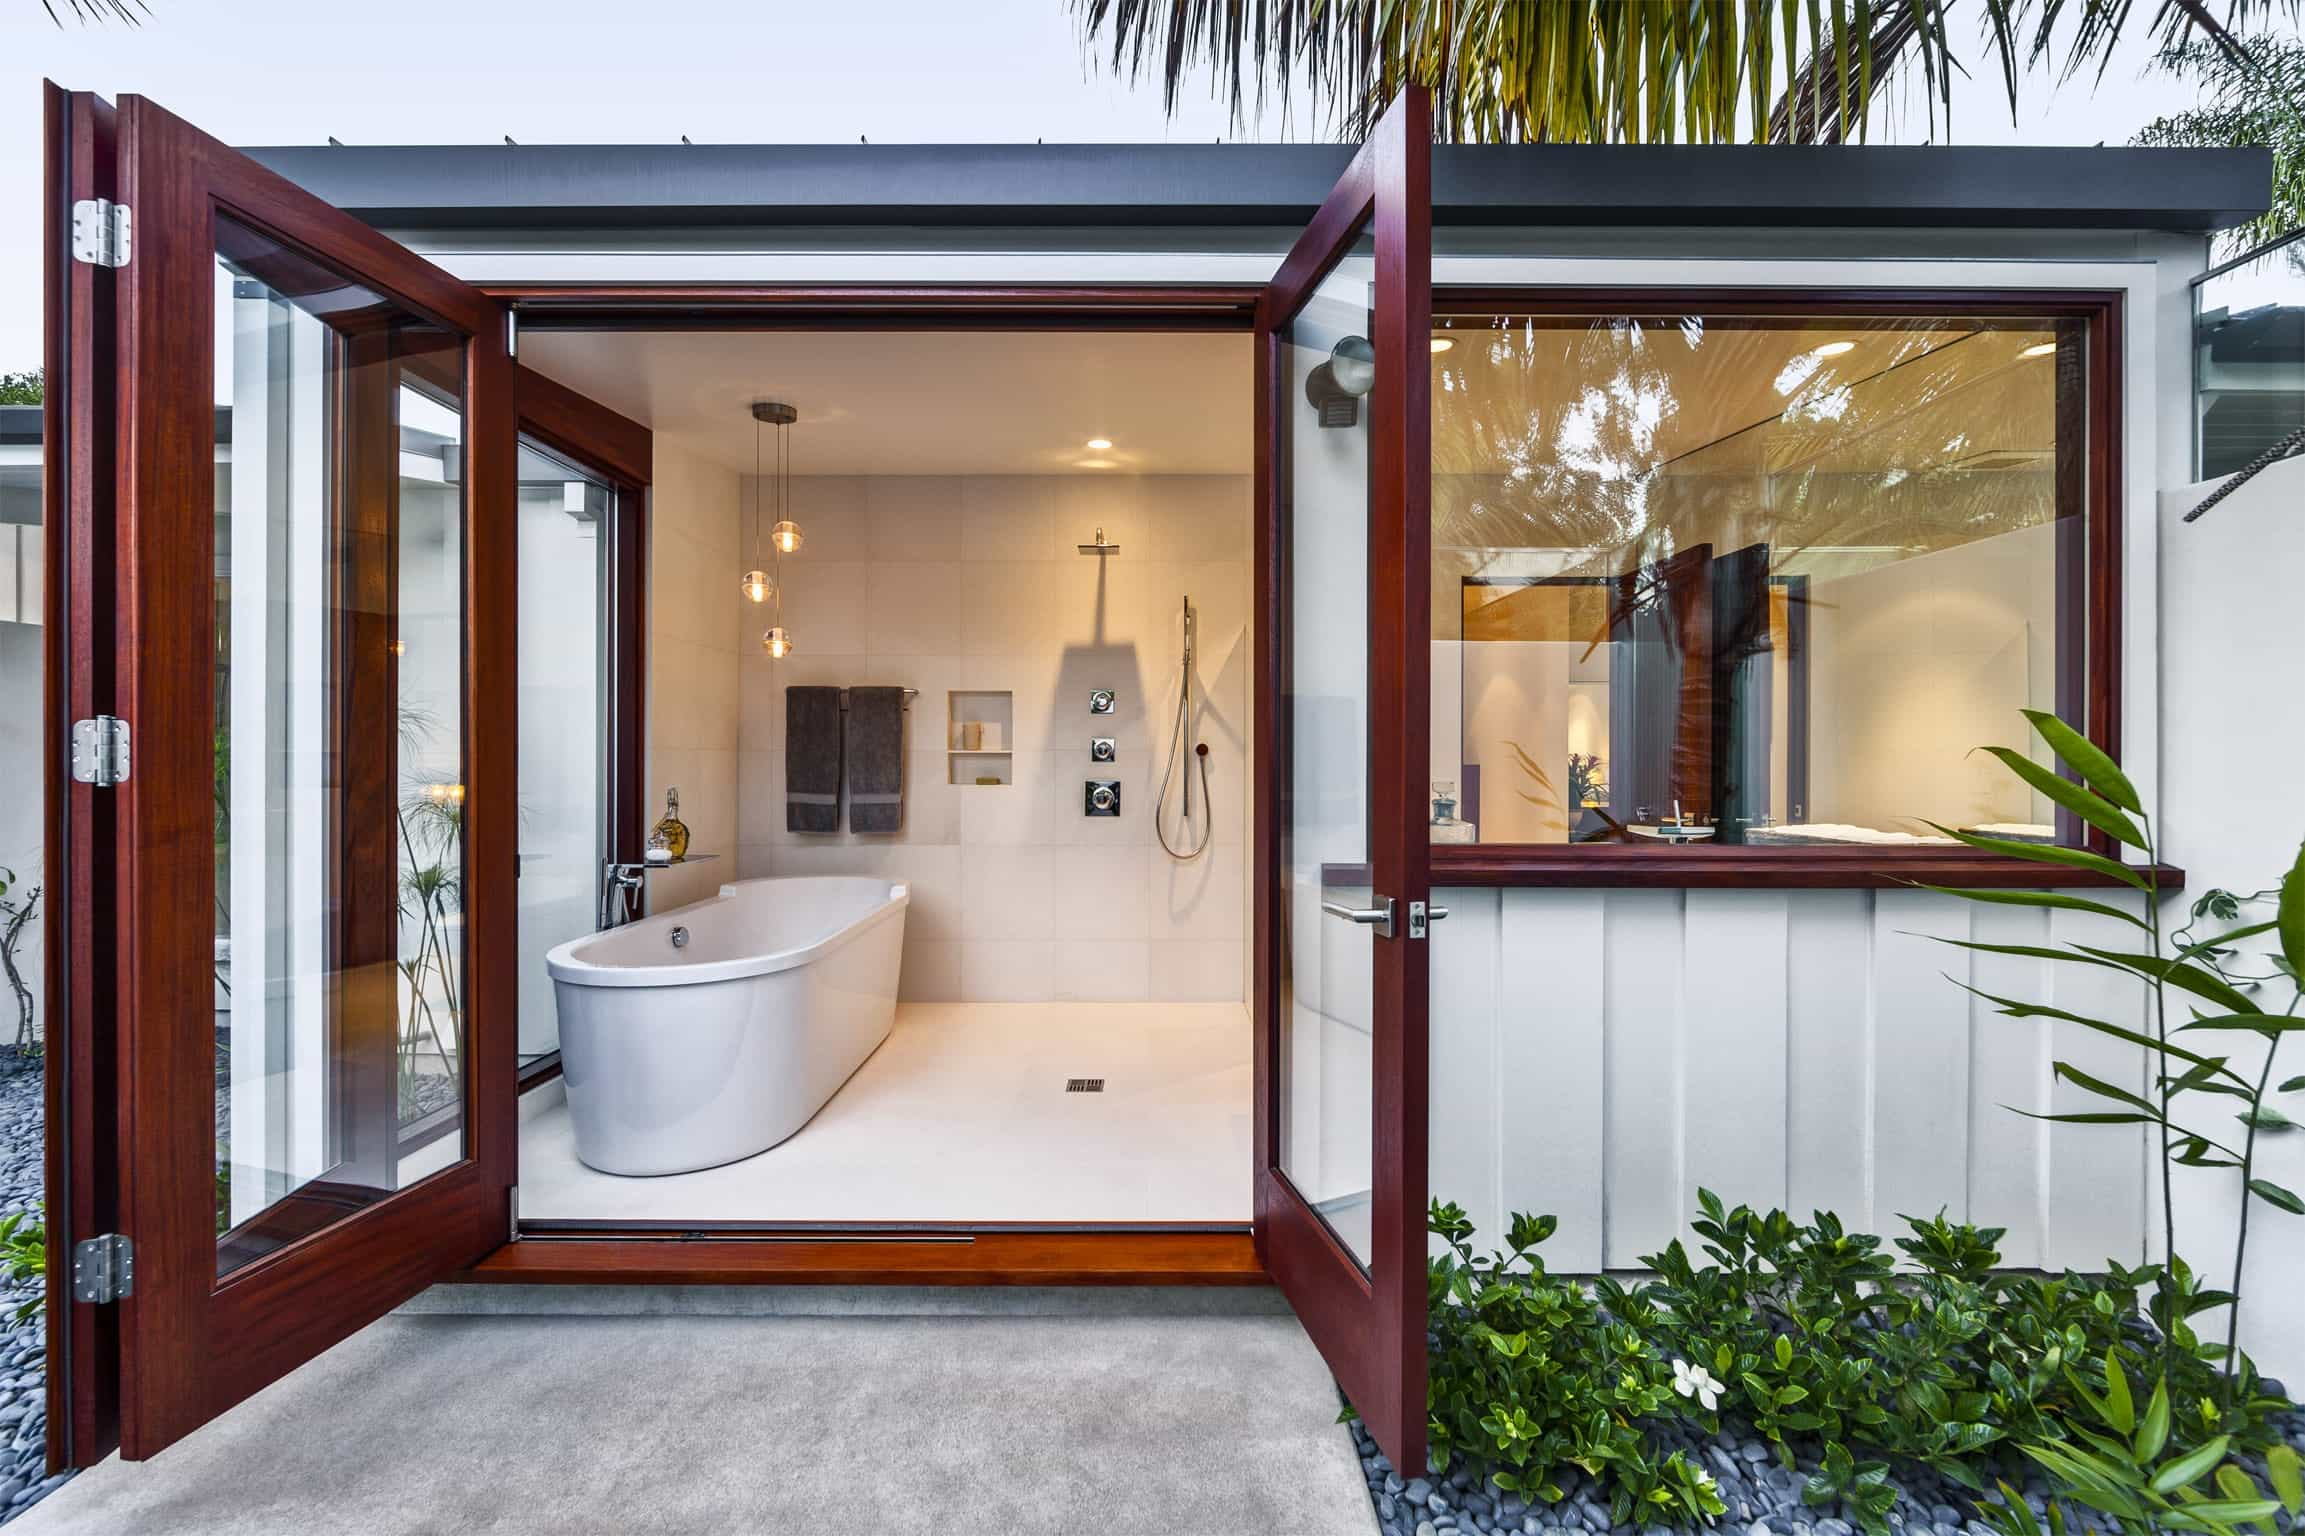 Spacious Spa And Bathroom Combination With Patio Access (View 9 of 16)